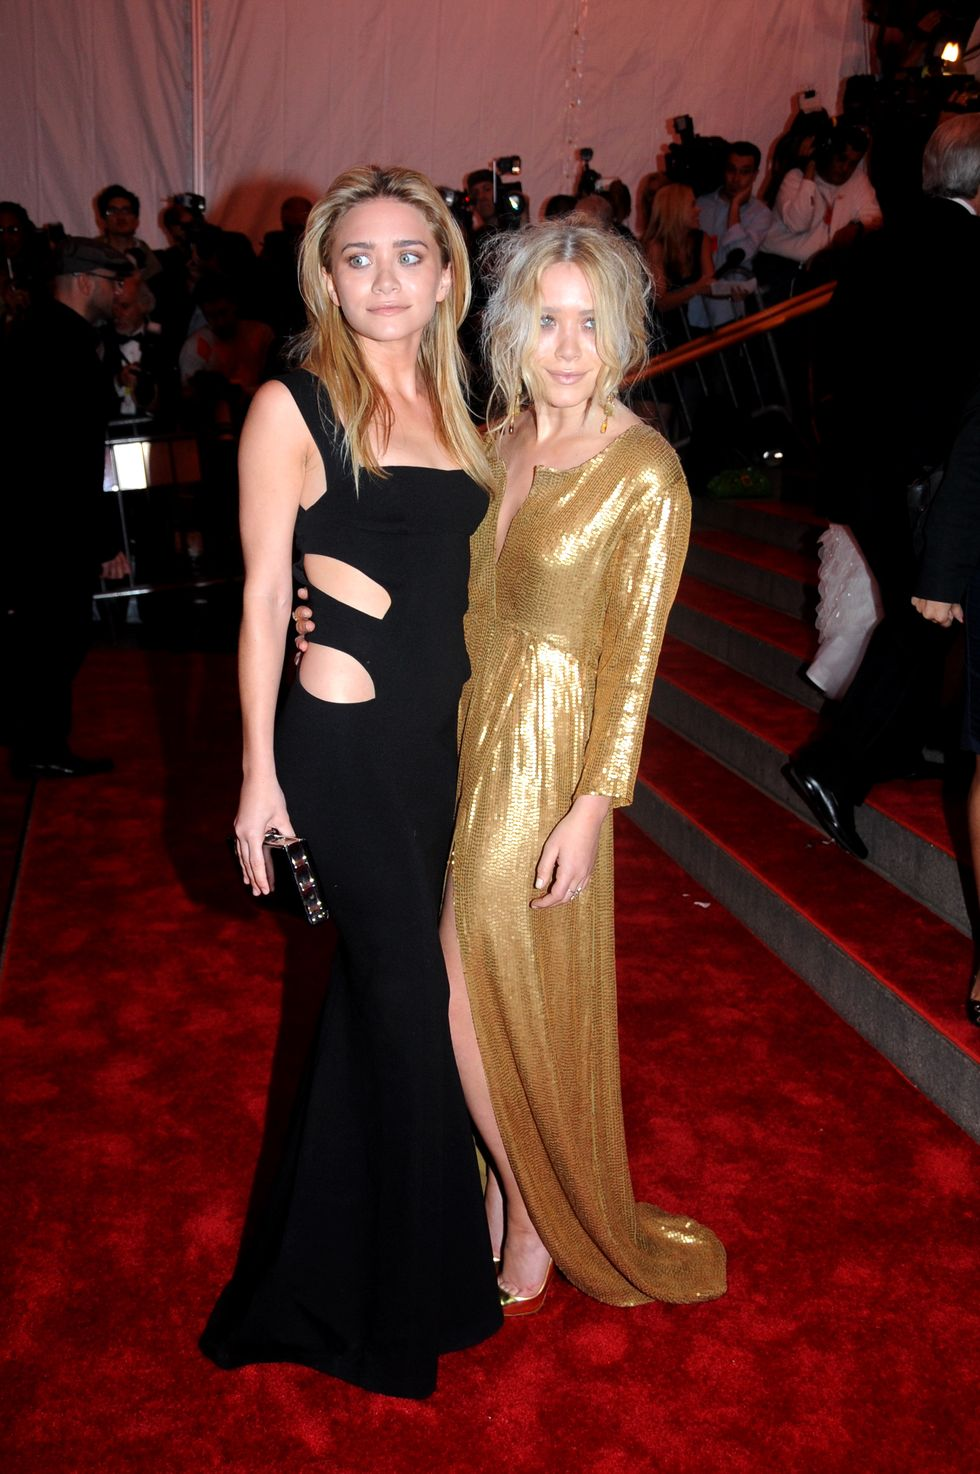 May 05, 2008 For their fourth Met Gala appearance, the twins both wore dresses by Diane von Furstenberg. Ashley opted for a simple black gown with cut-outs, but Mary-Kate stood out in shimmering gold.